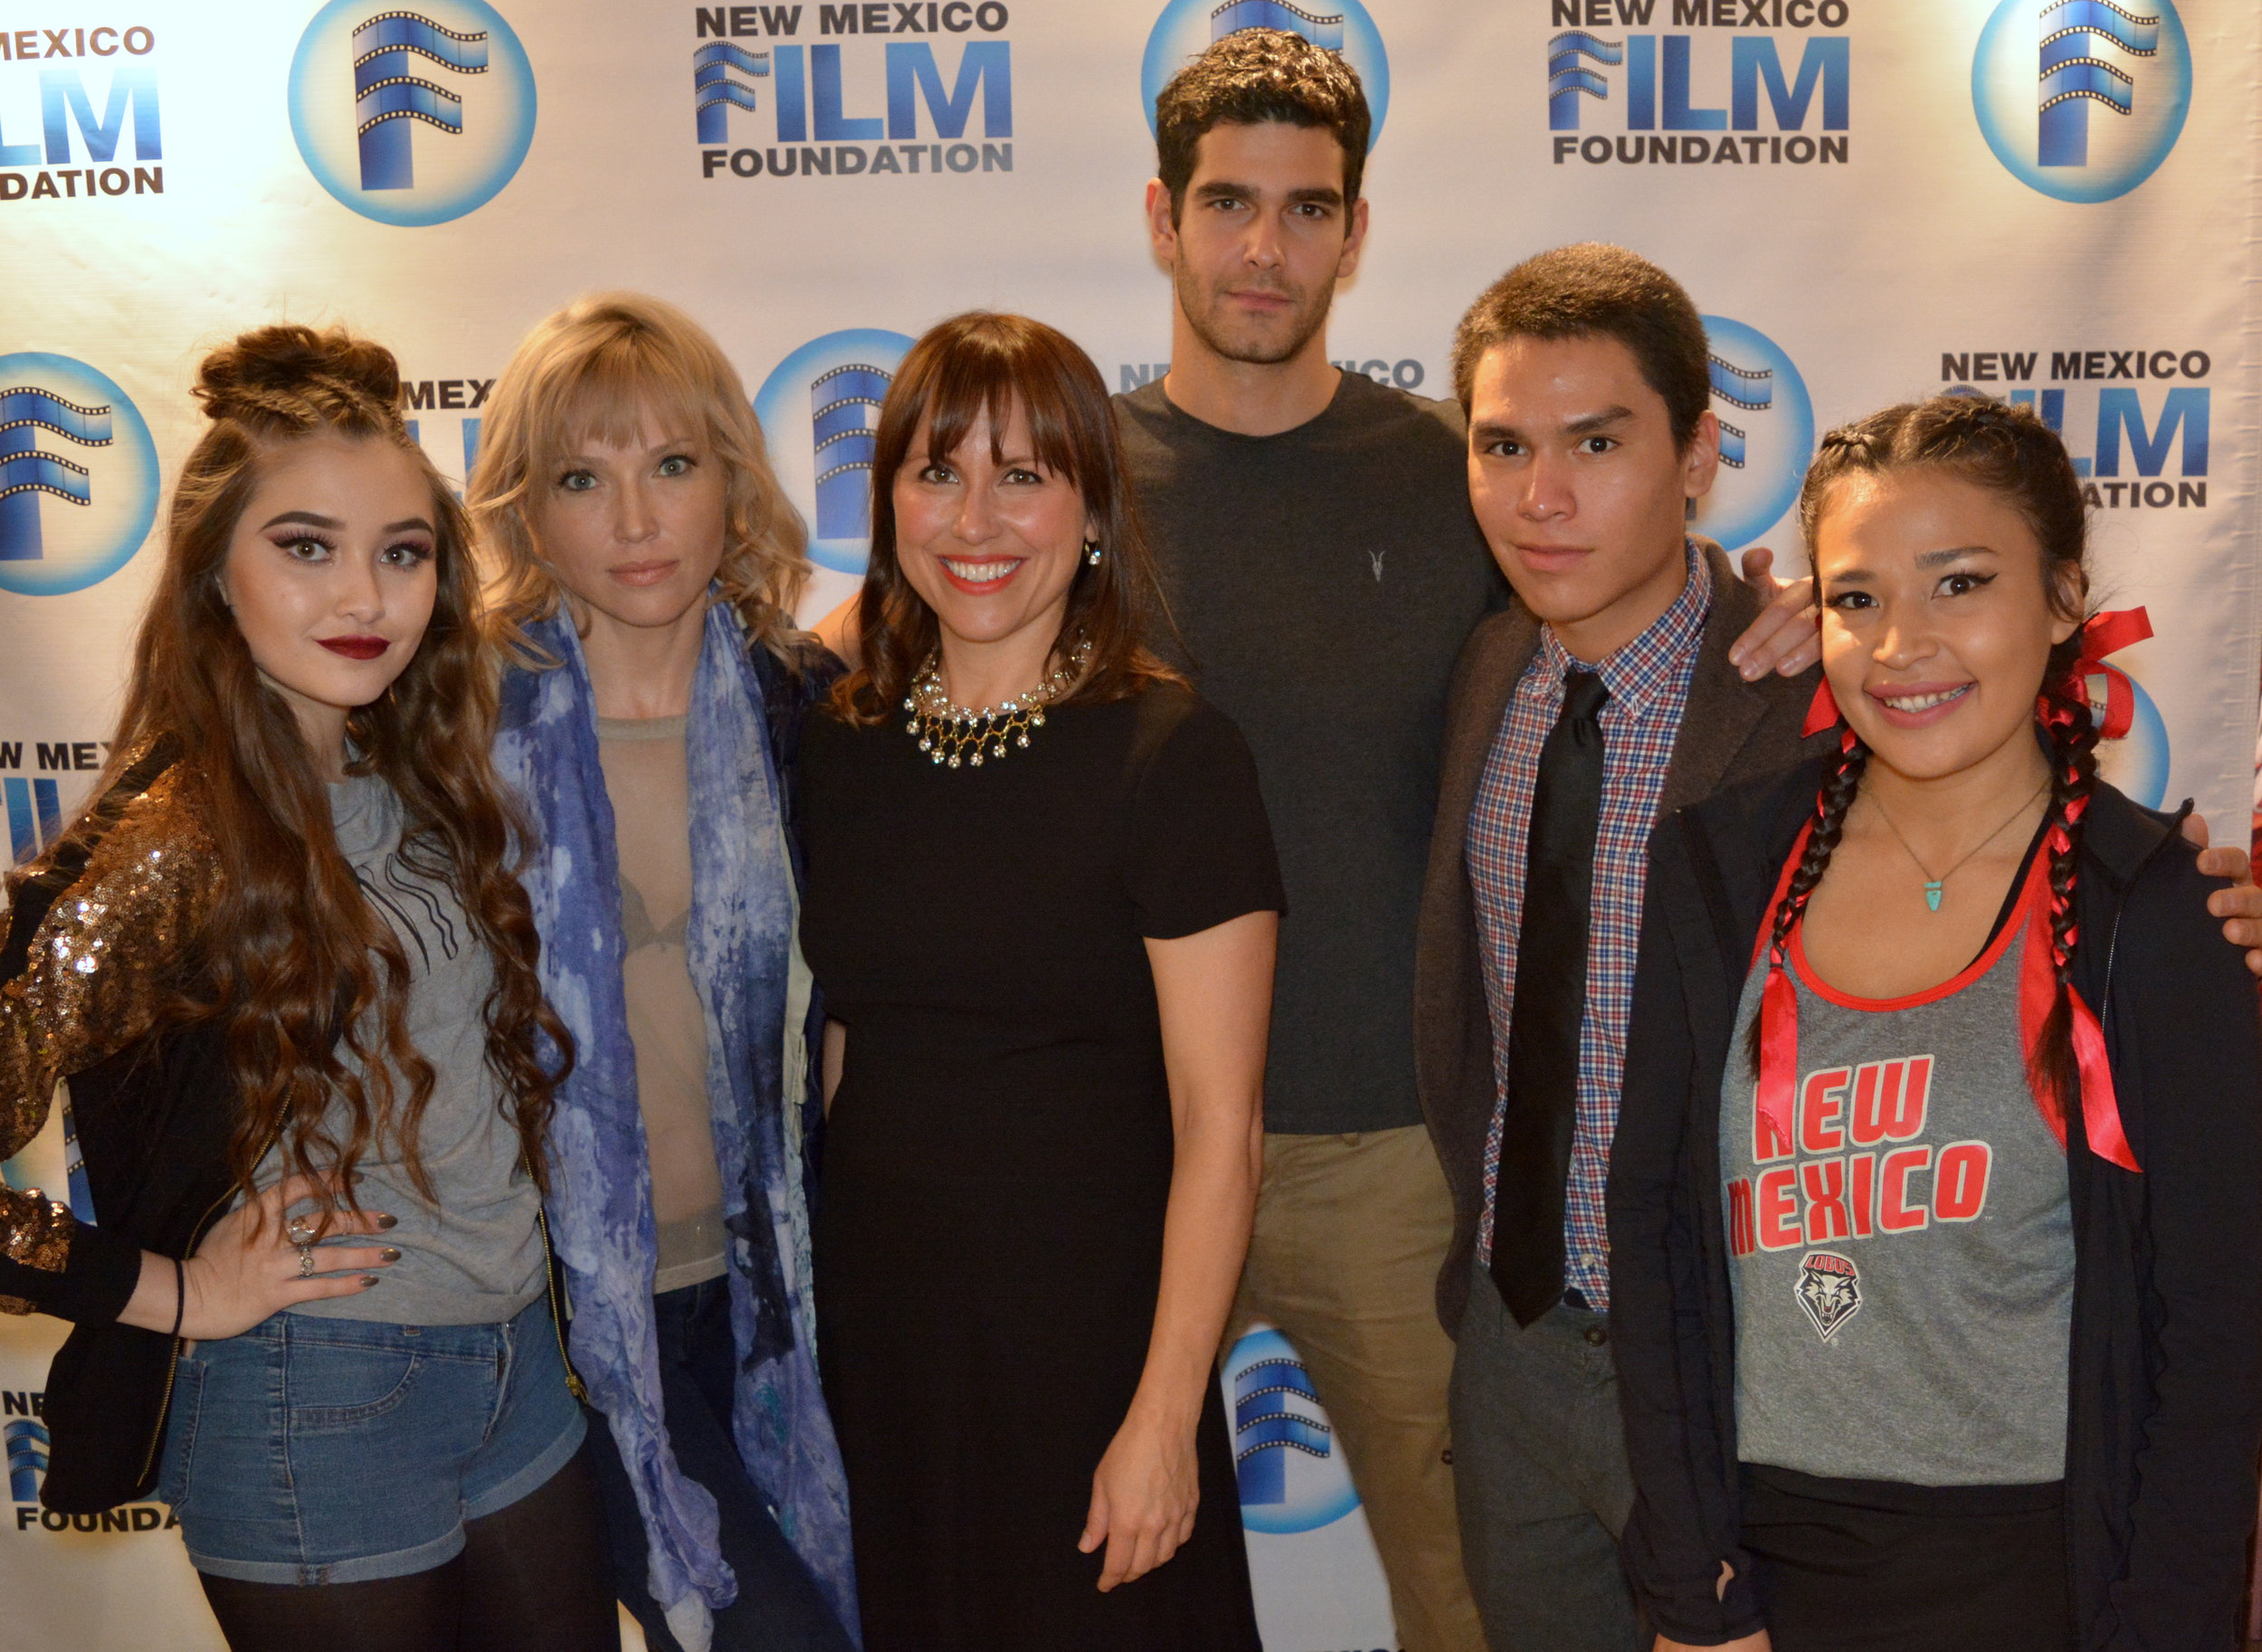 Hanging with the amazing Wolf reading cast... Khaliya Kimberlie, Jenny Gabrielle, Dino Kelly, Forrest Goodluck, and MorningStar Angeline. Photo by Linda Carfagno.